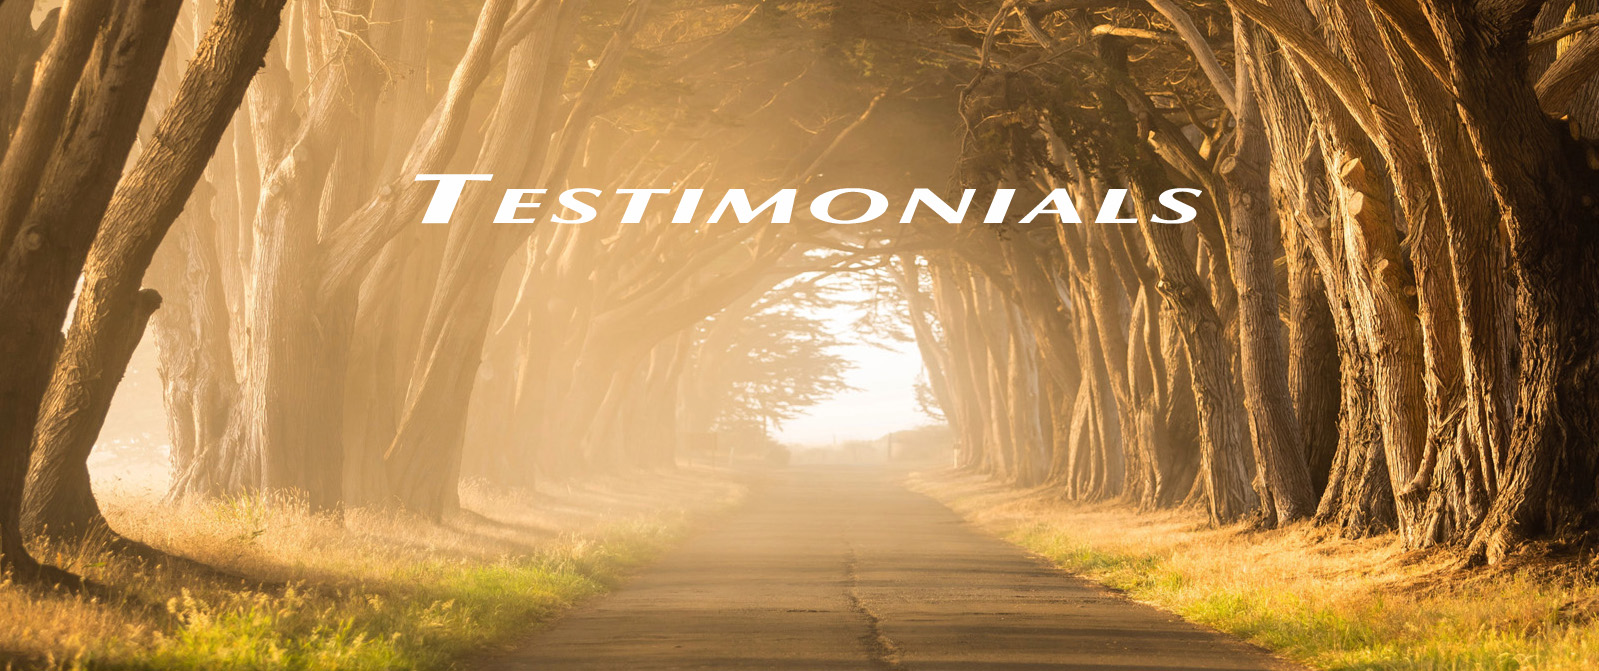 A few testimonials with photo of oakcovered pathway towards light